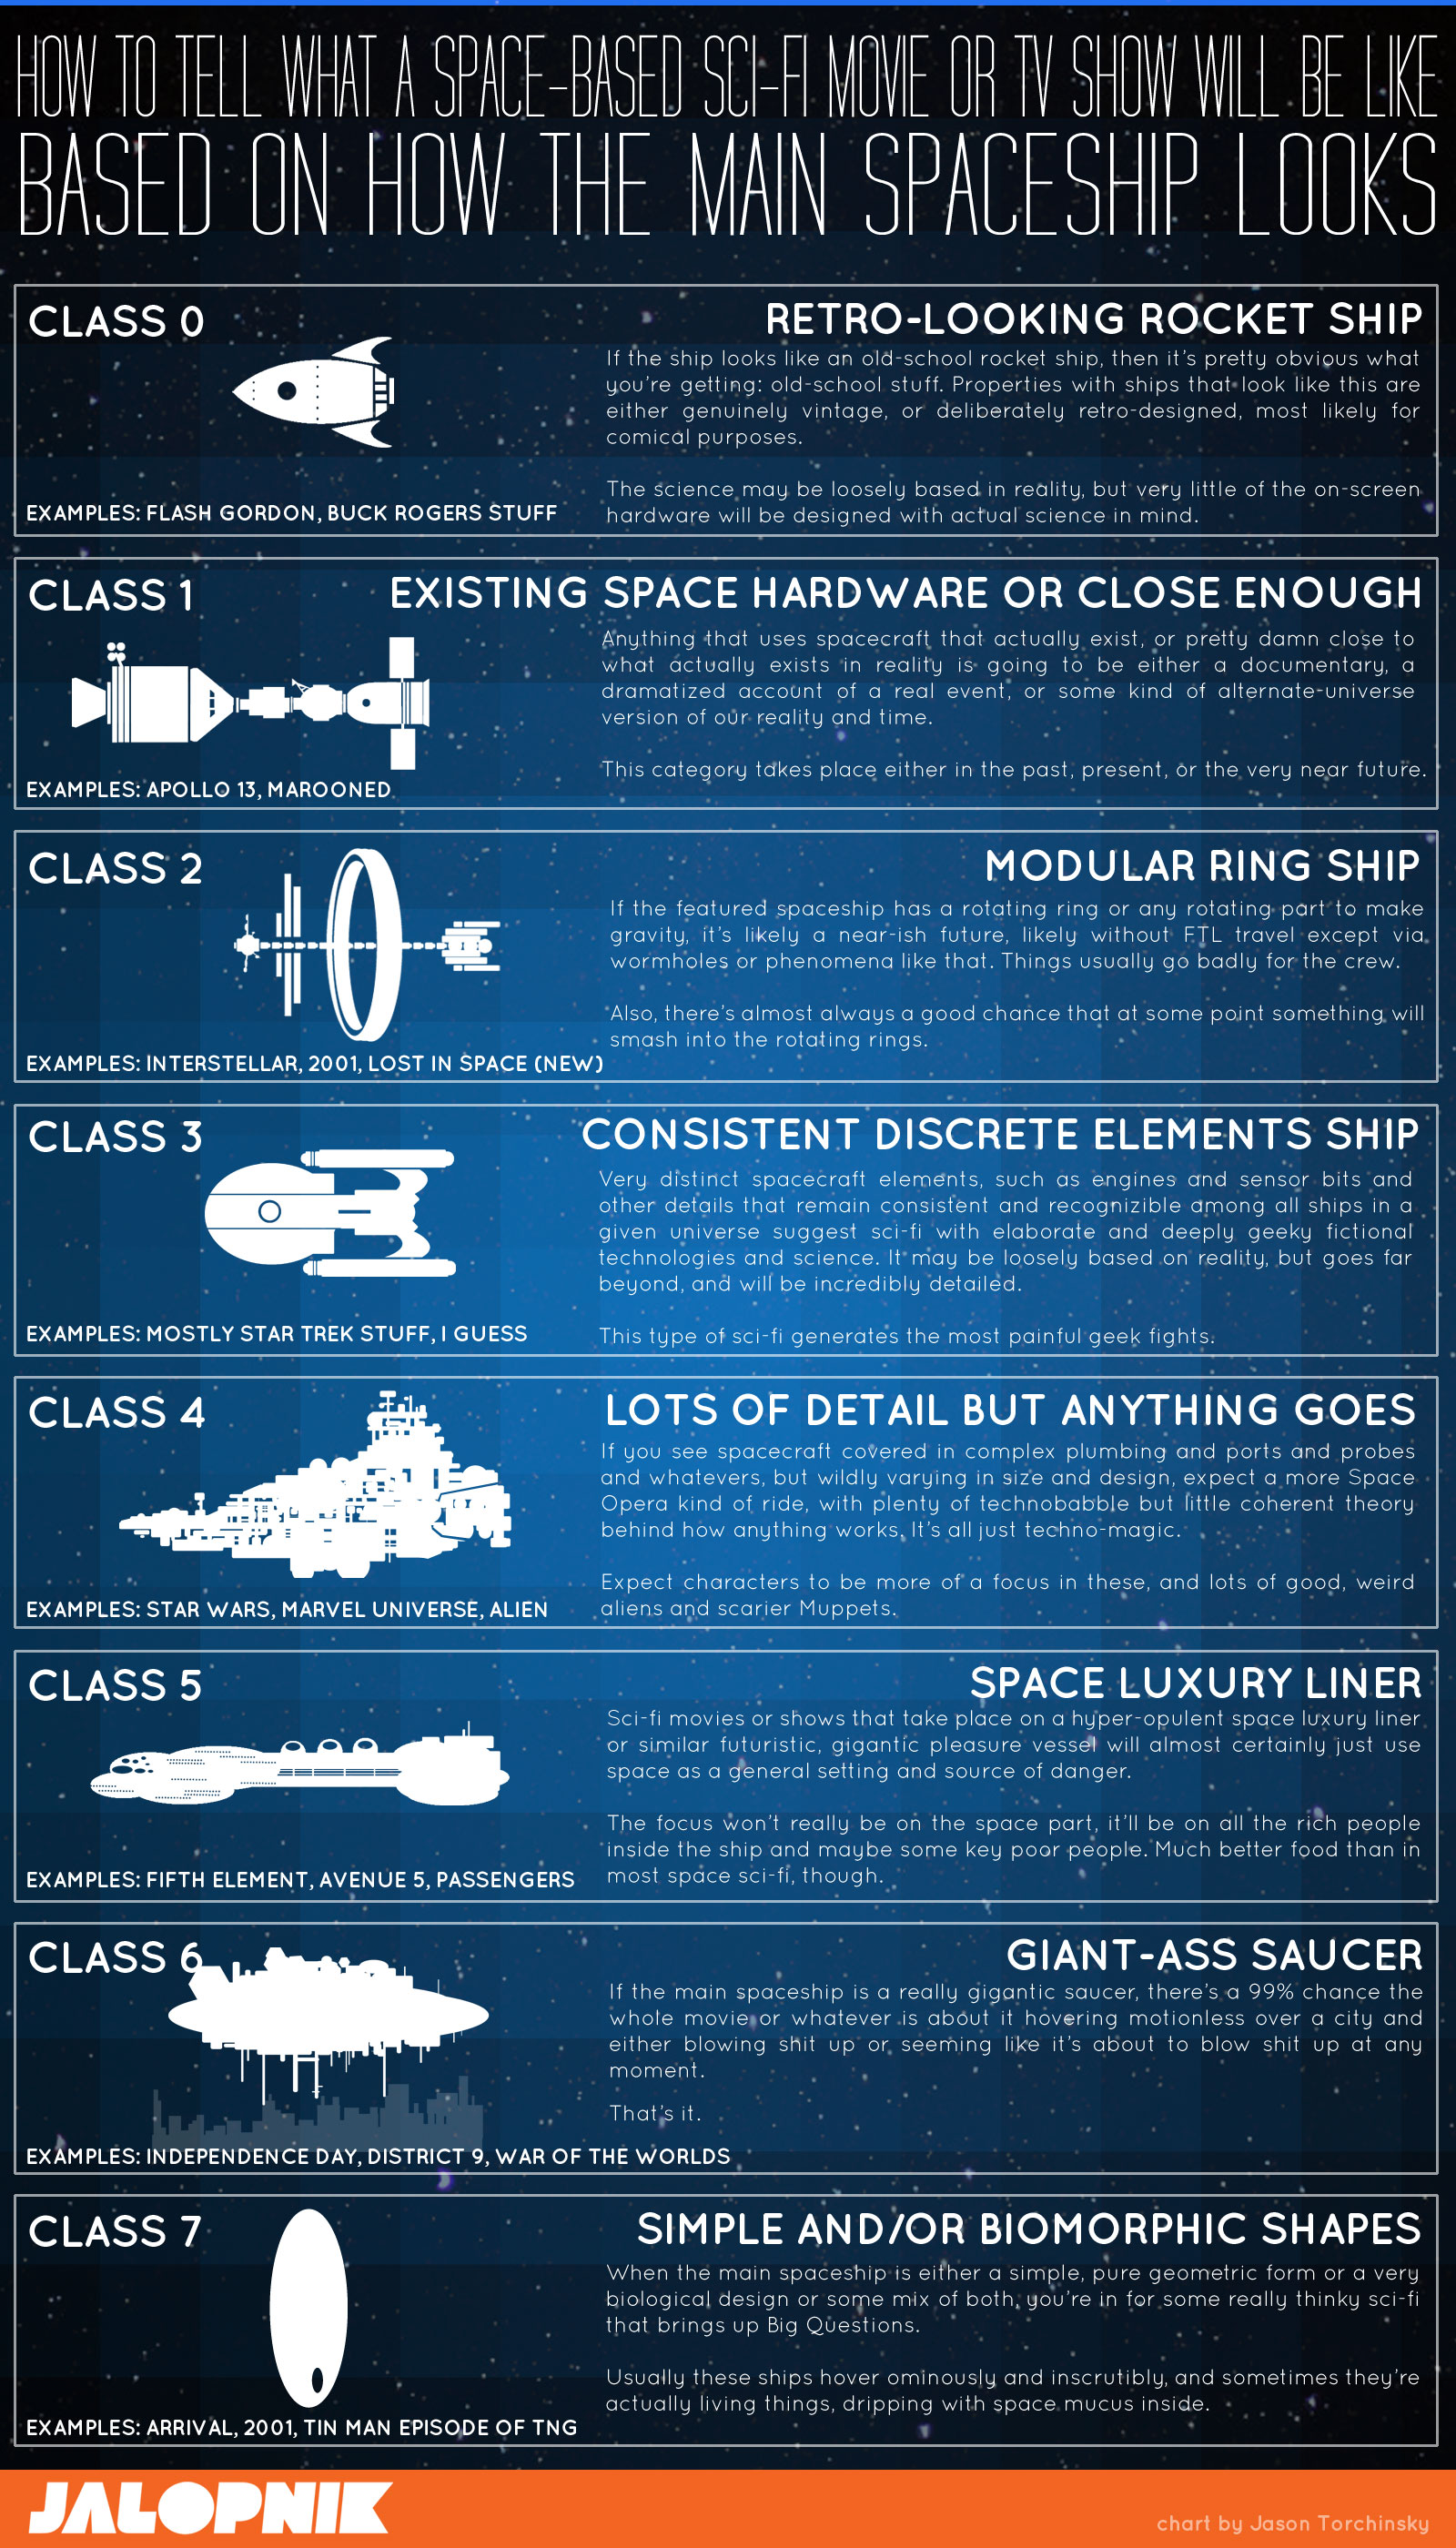 How to tell what kind of space-based sci-fi movie or tv show you're about to watch by looking at the main ship